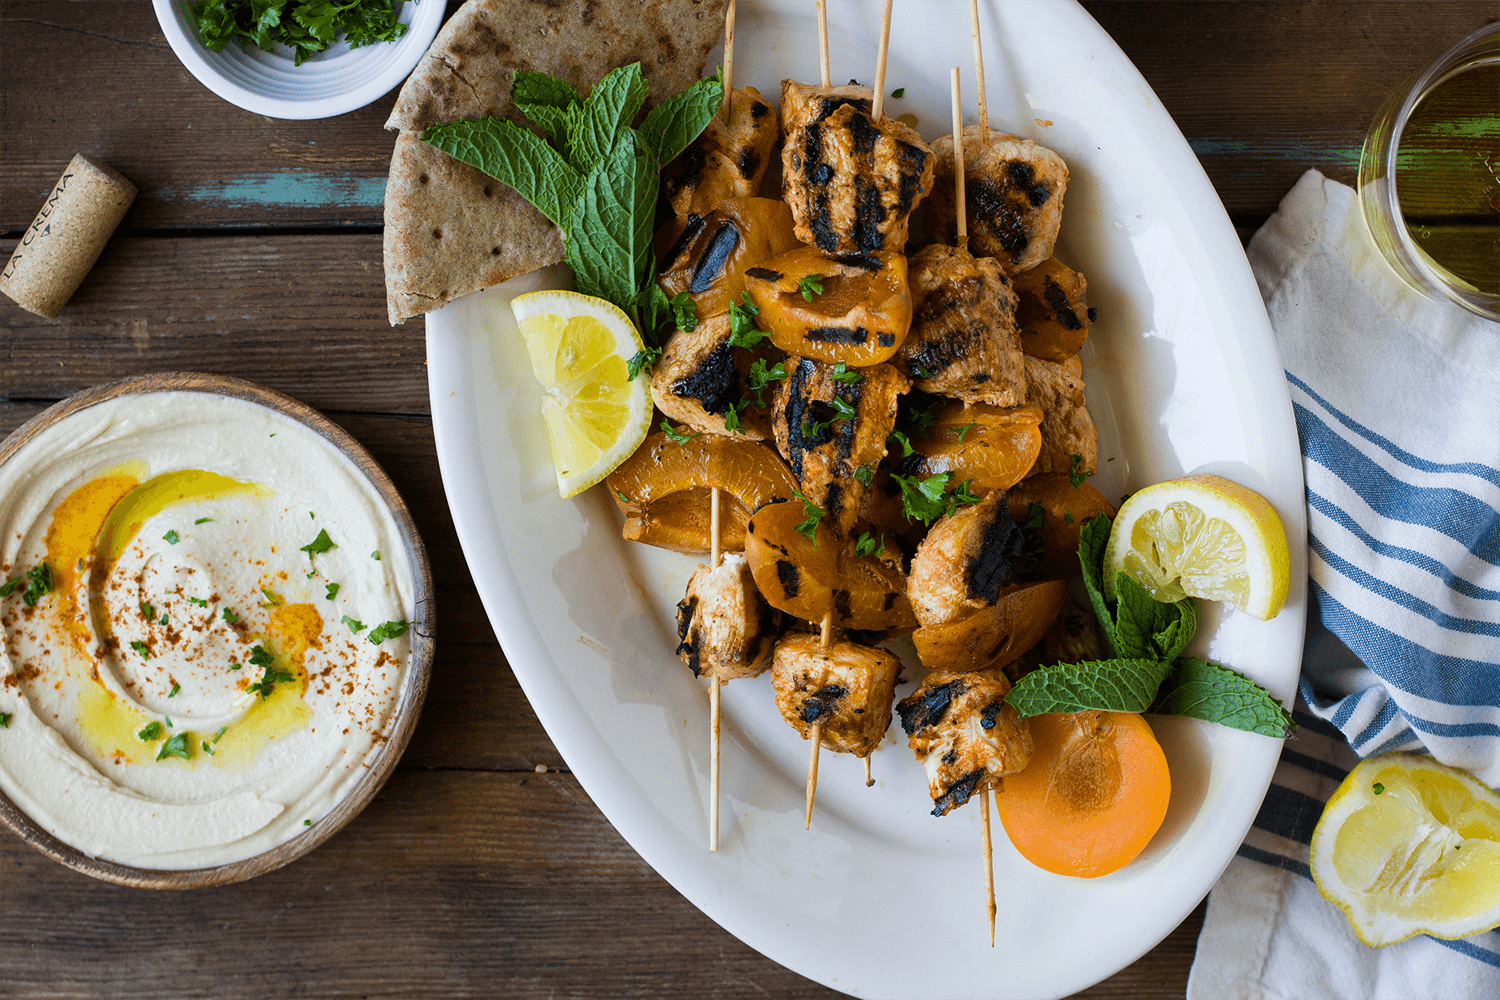 Top 14 Summer Recipes Roundup: Yogurt Marinated Apricot Chicken Skewers